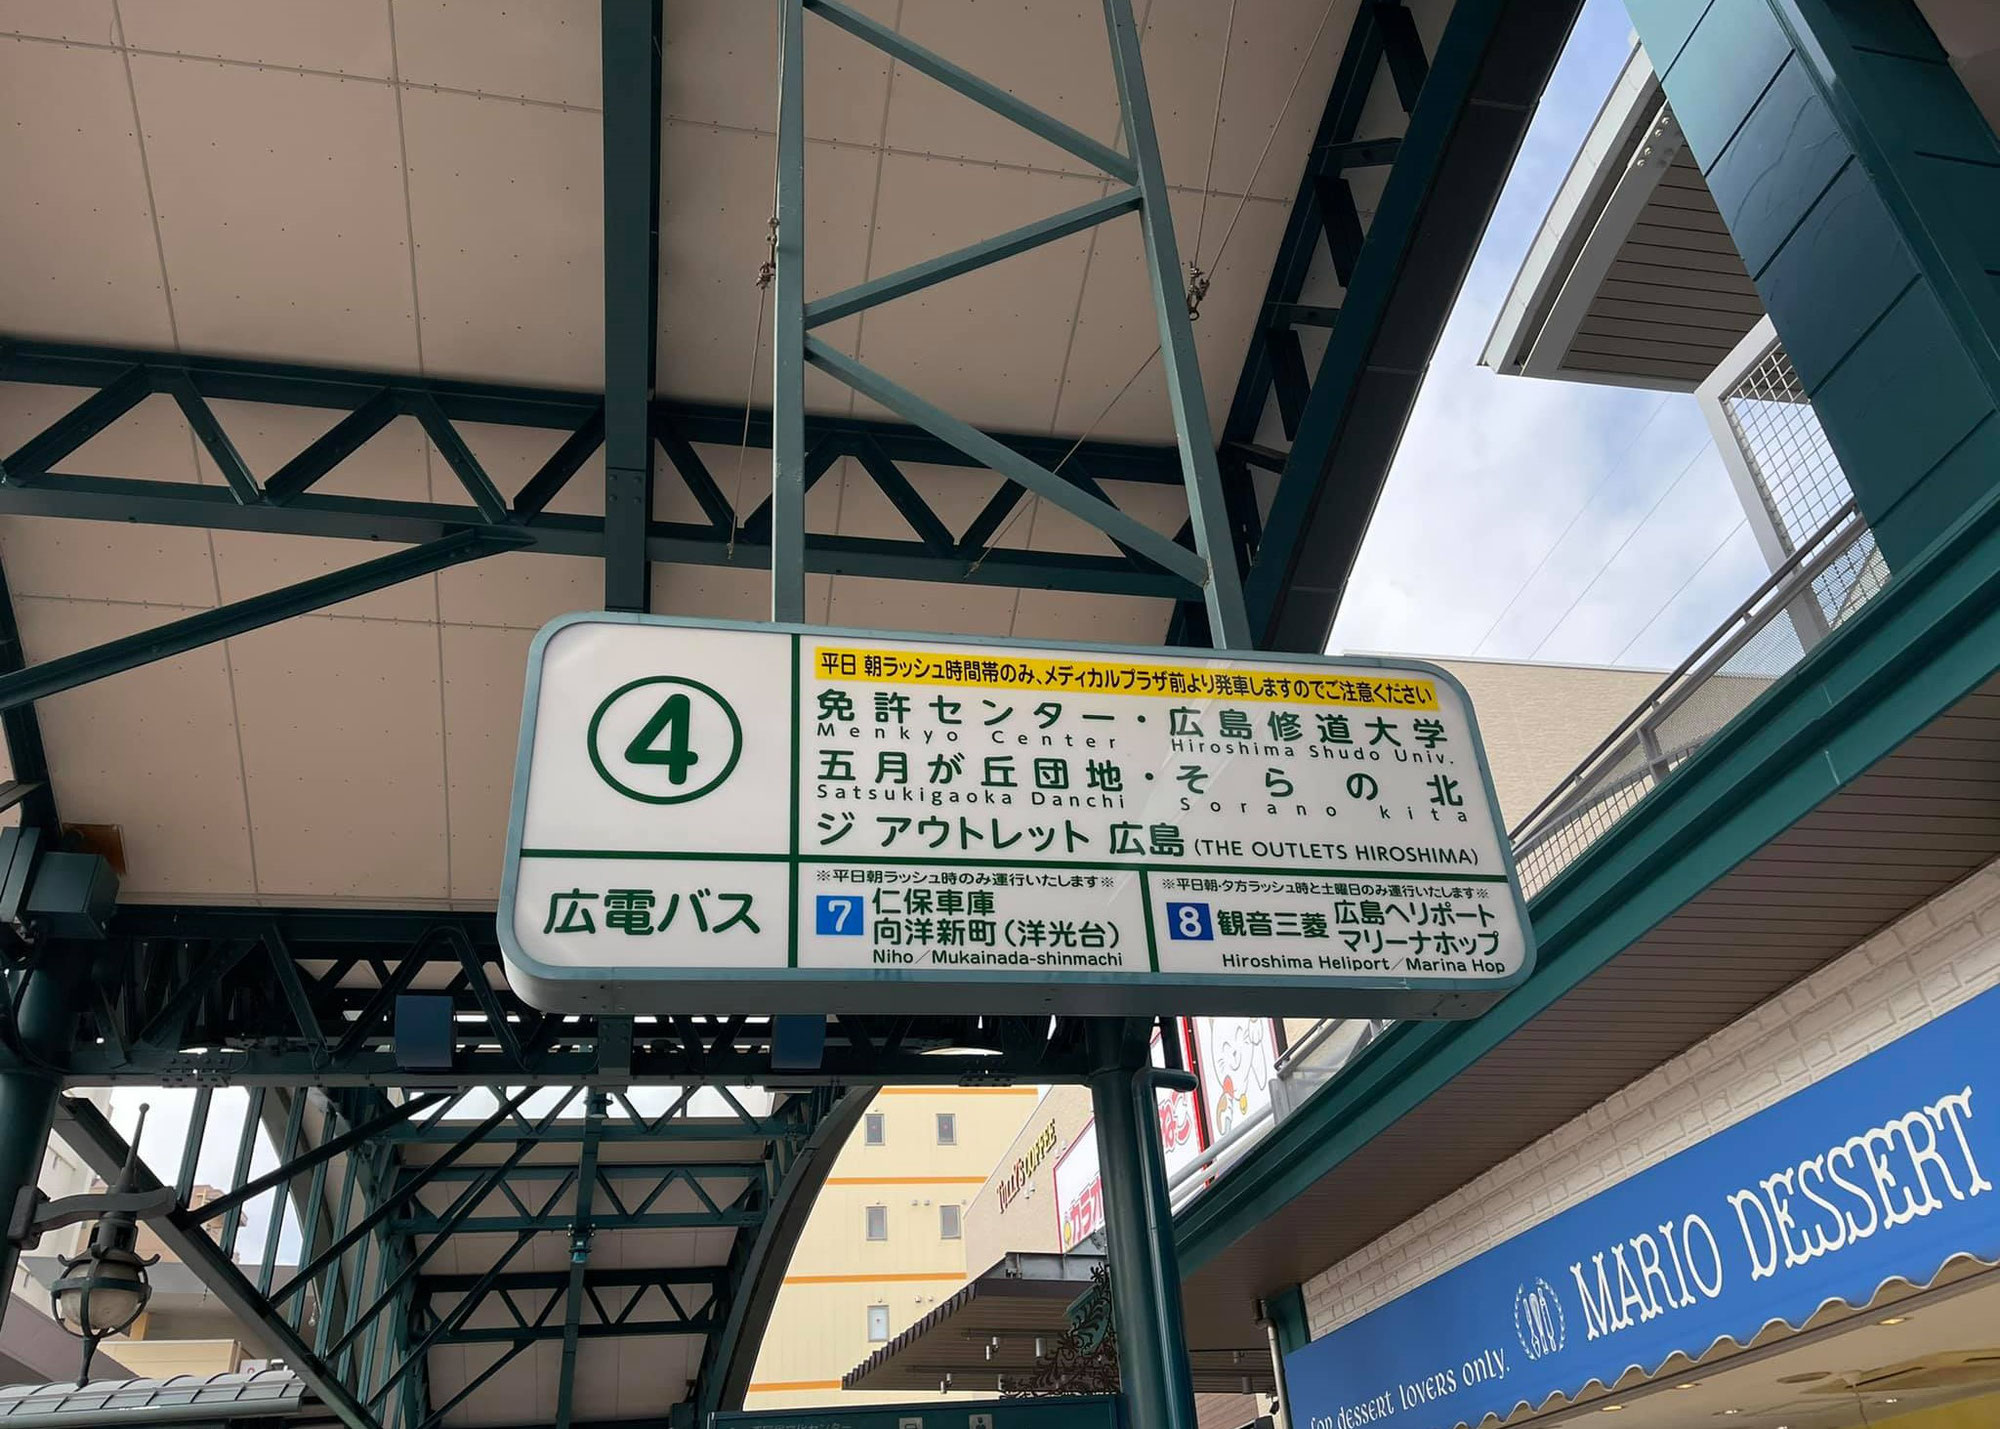 How to go to Hiroshima prefecture driving licenses center